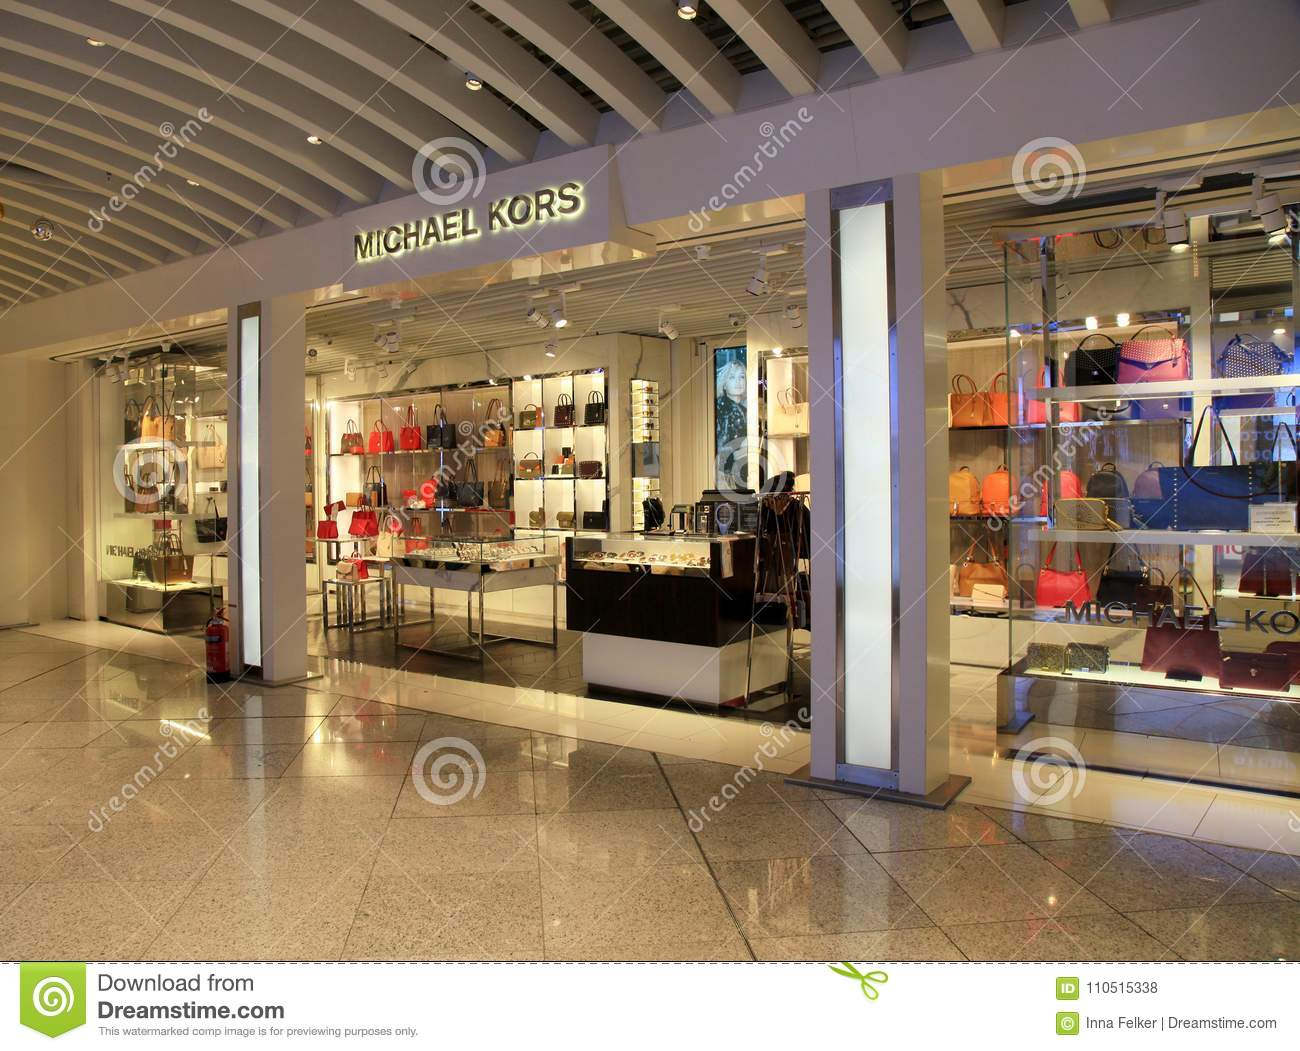 Michael Kors duty free shop at airport in Athens, Greece